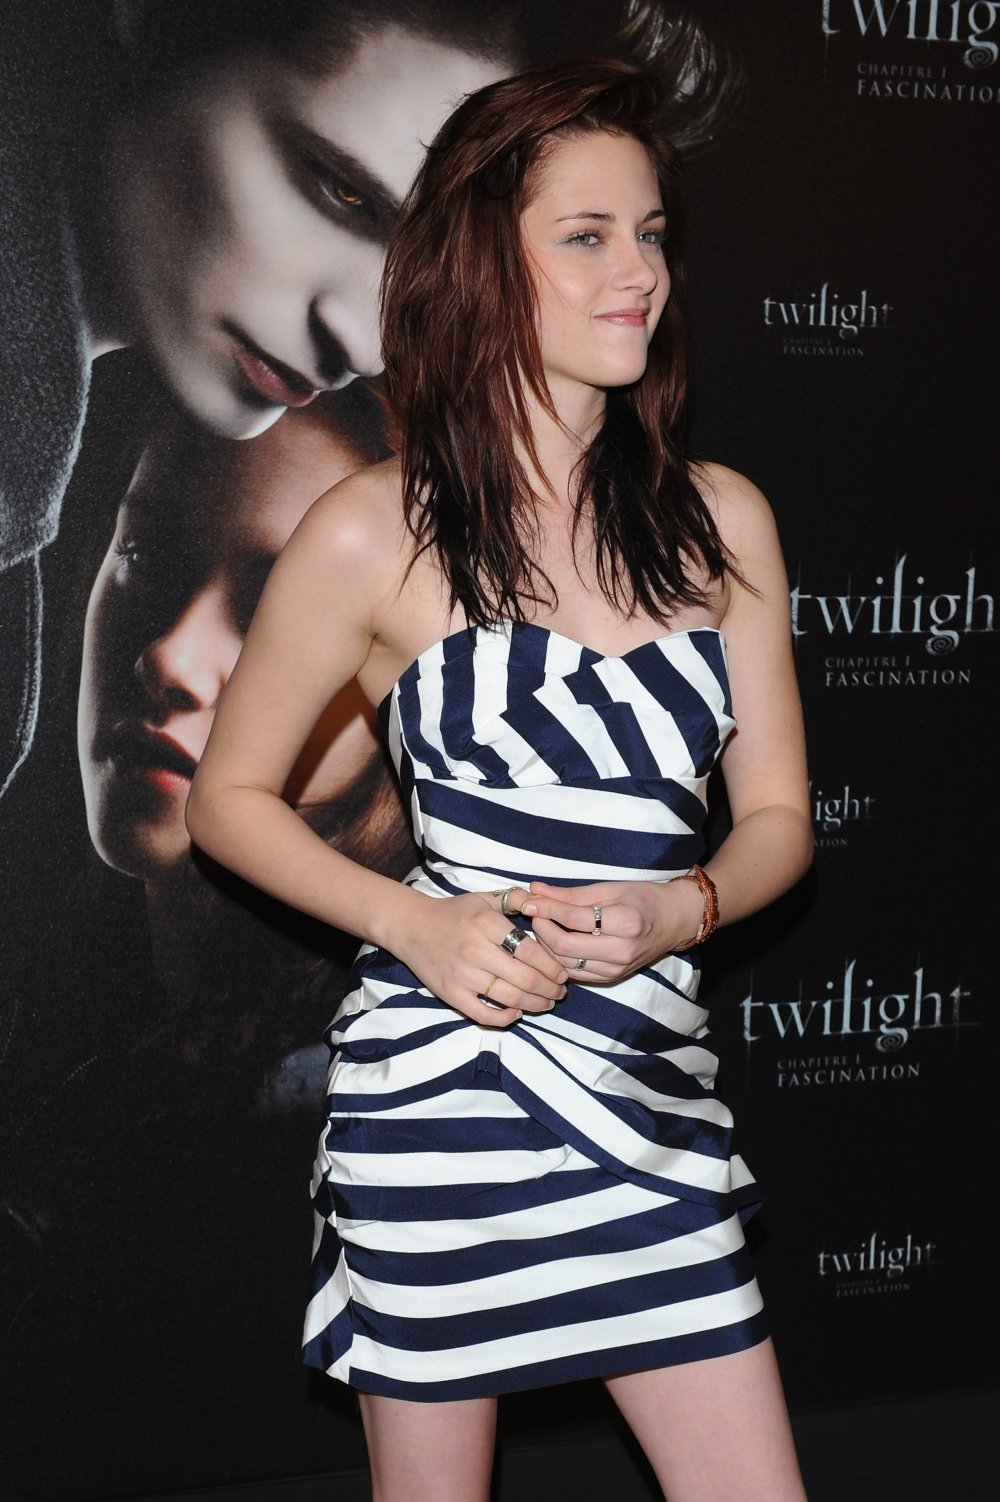 Kristen Stewart Hot Photos Kristen Stewart Hot-3256